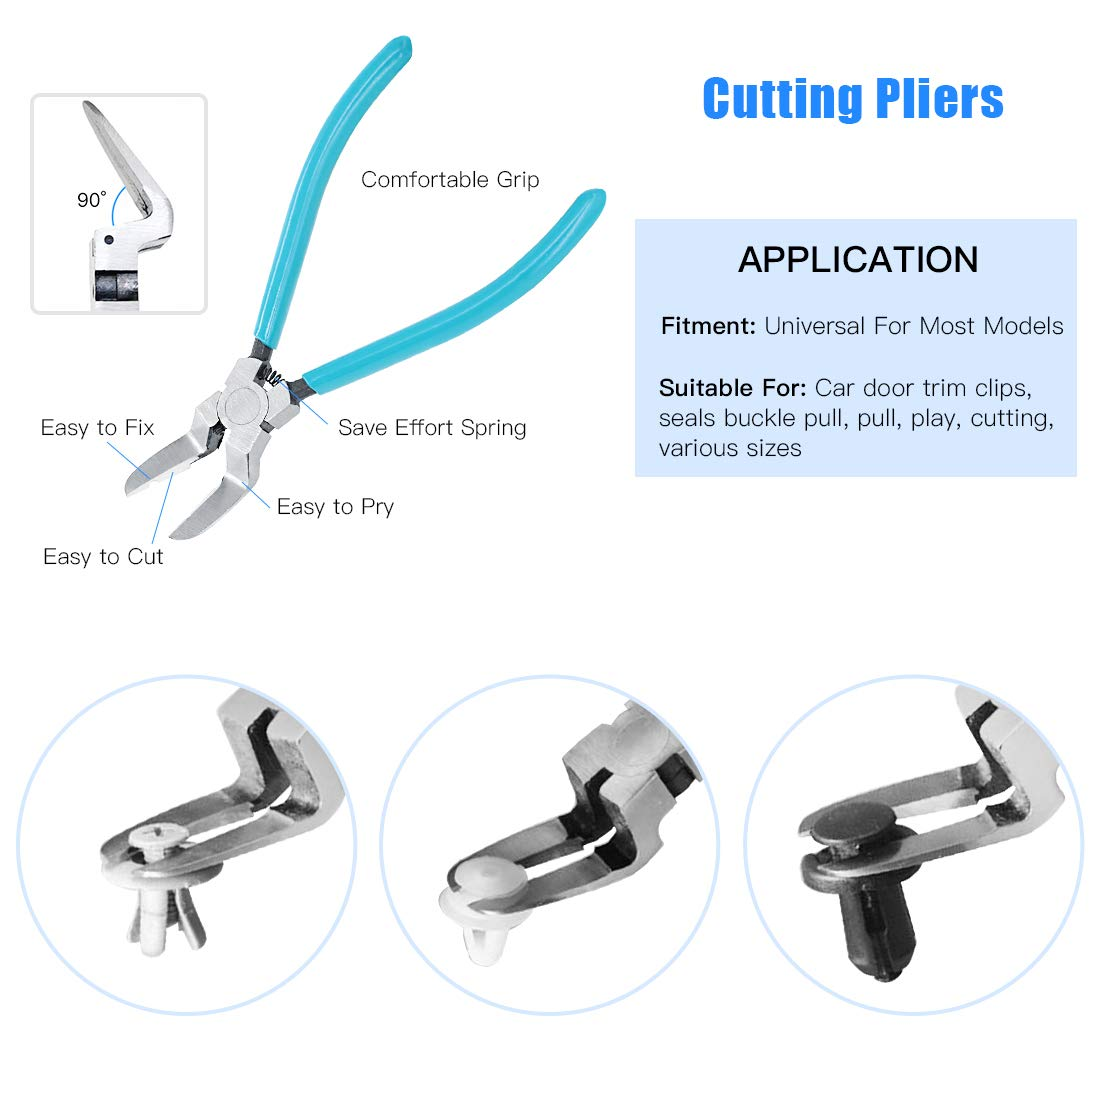 Glarks 11Pcs Auto Trim Removal Tool Kit Universal Car Panel Trim Upholstery Rivets Clip Puller Plier Fastener Remover Automotive Door Panel Trim Removal Tool for Car Door Panel Dashboard